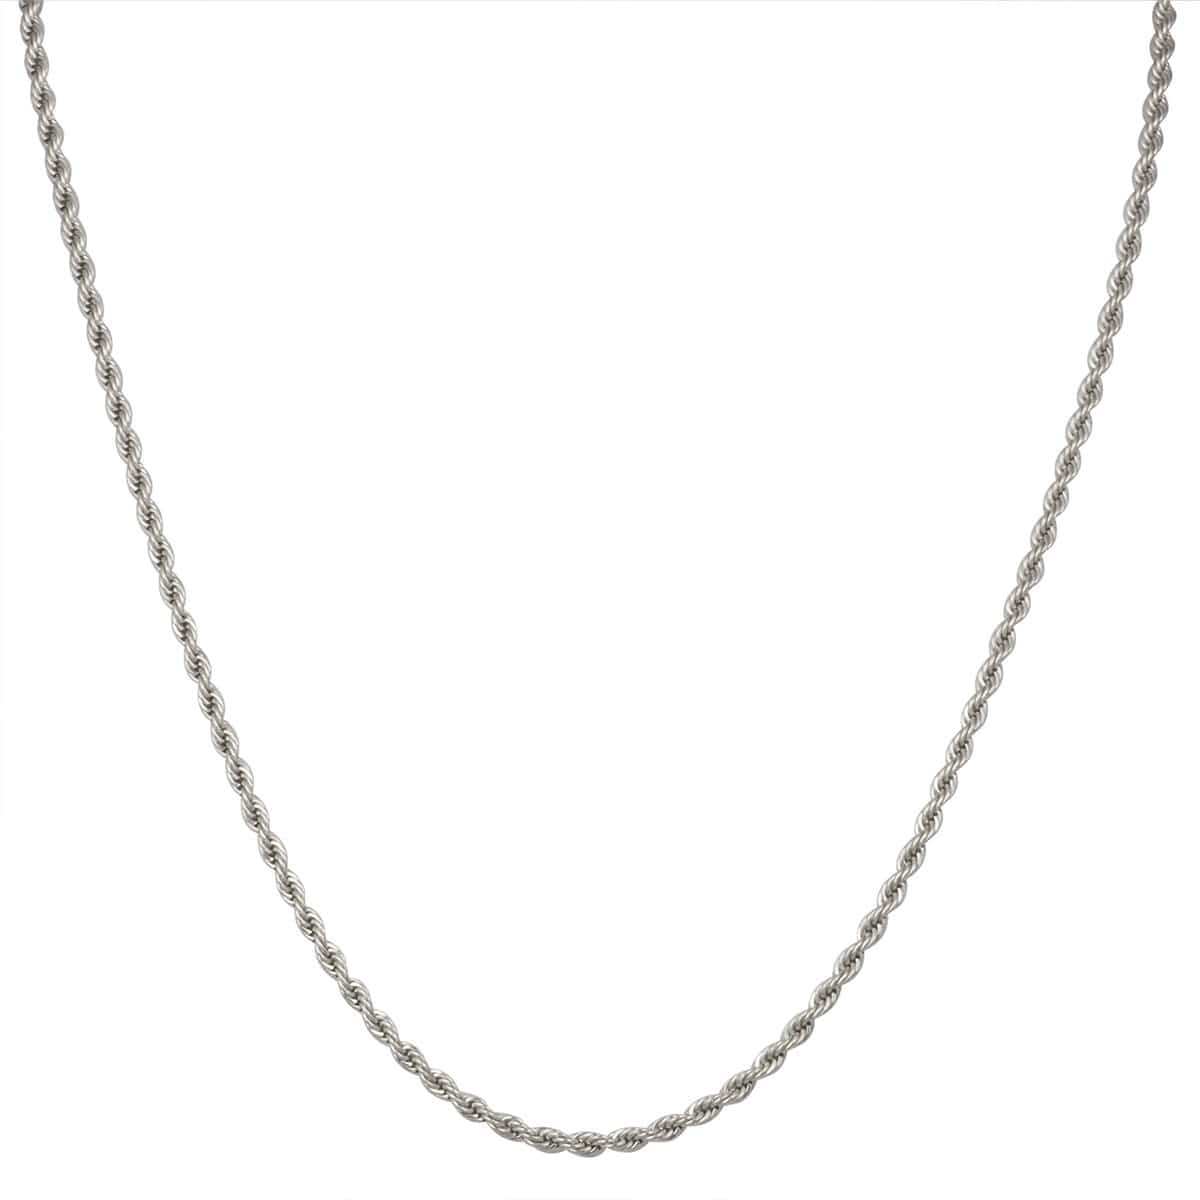 Silver Stainless Steel Polished 2 mm French Rope Chain Chains